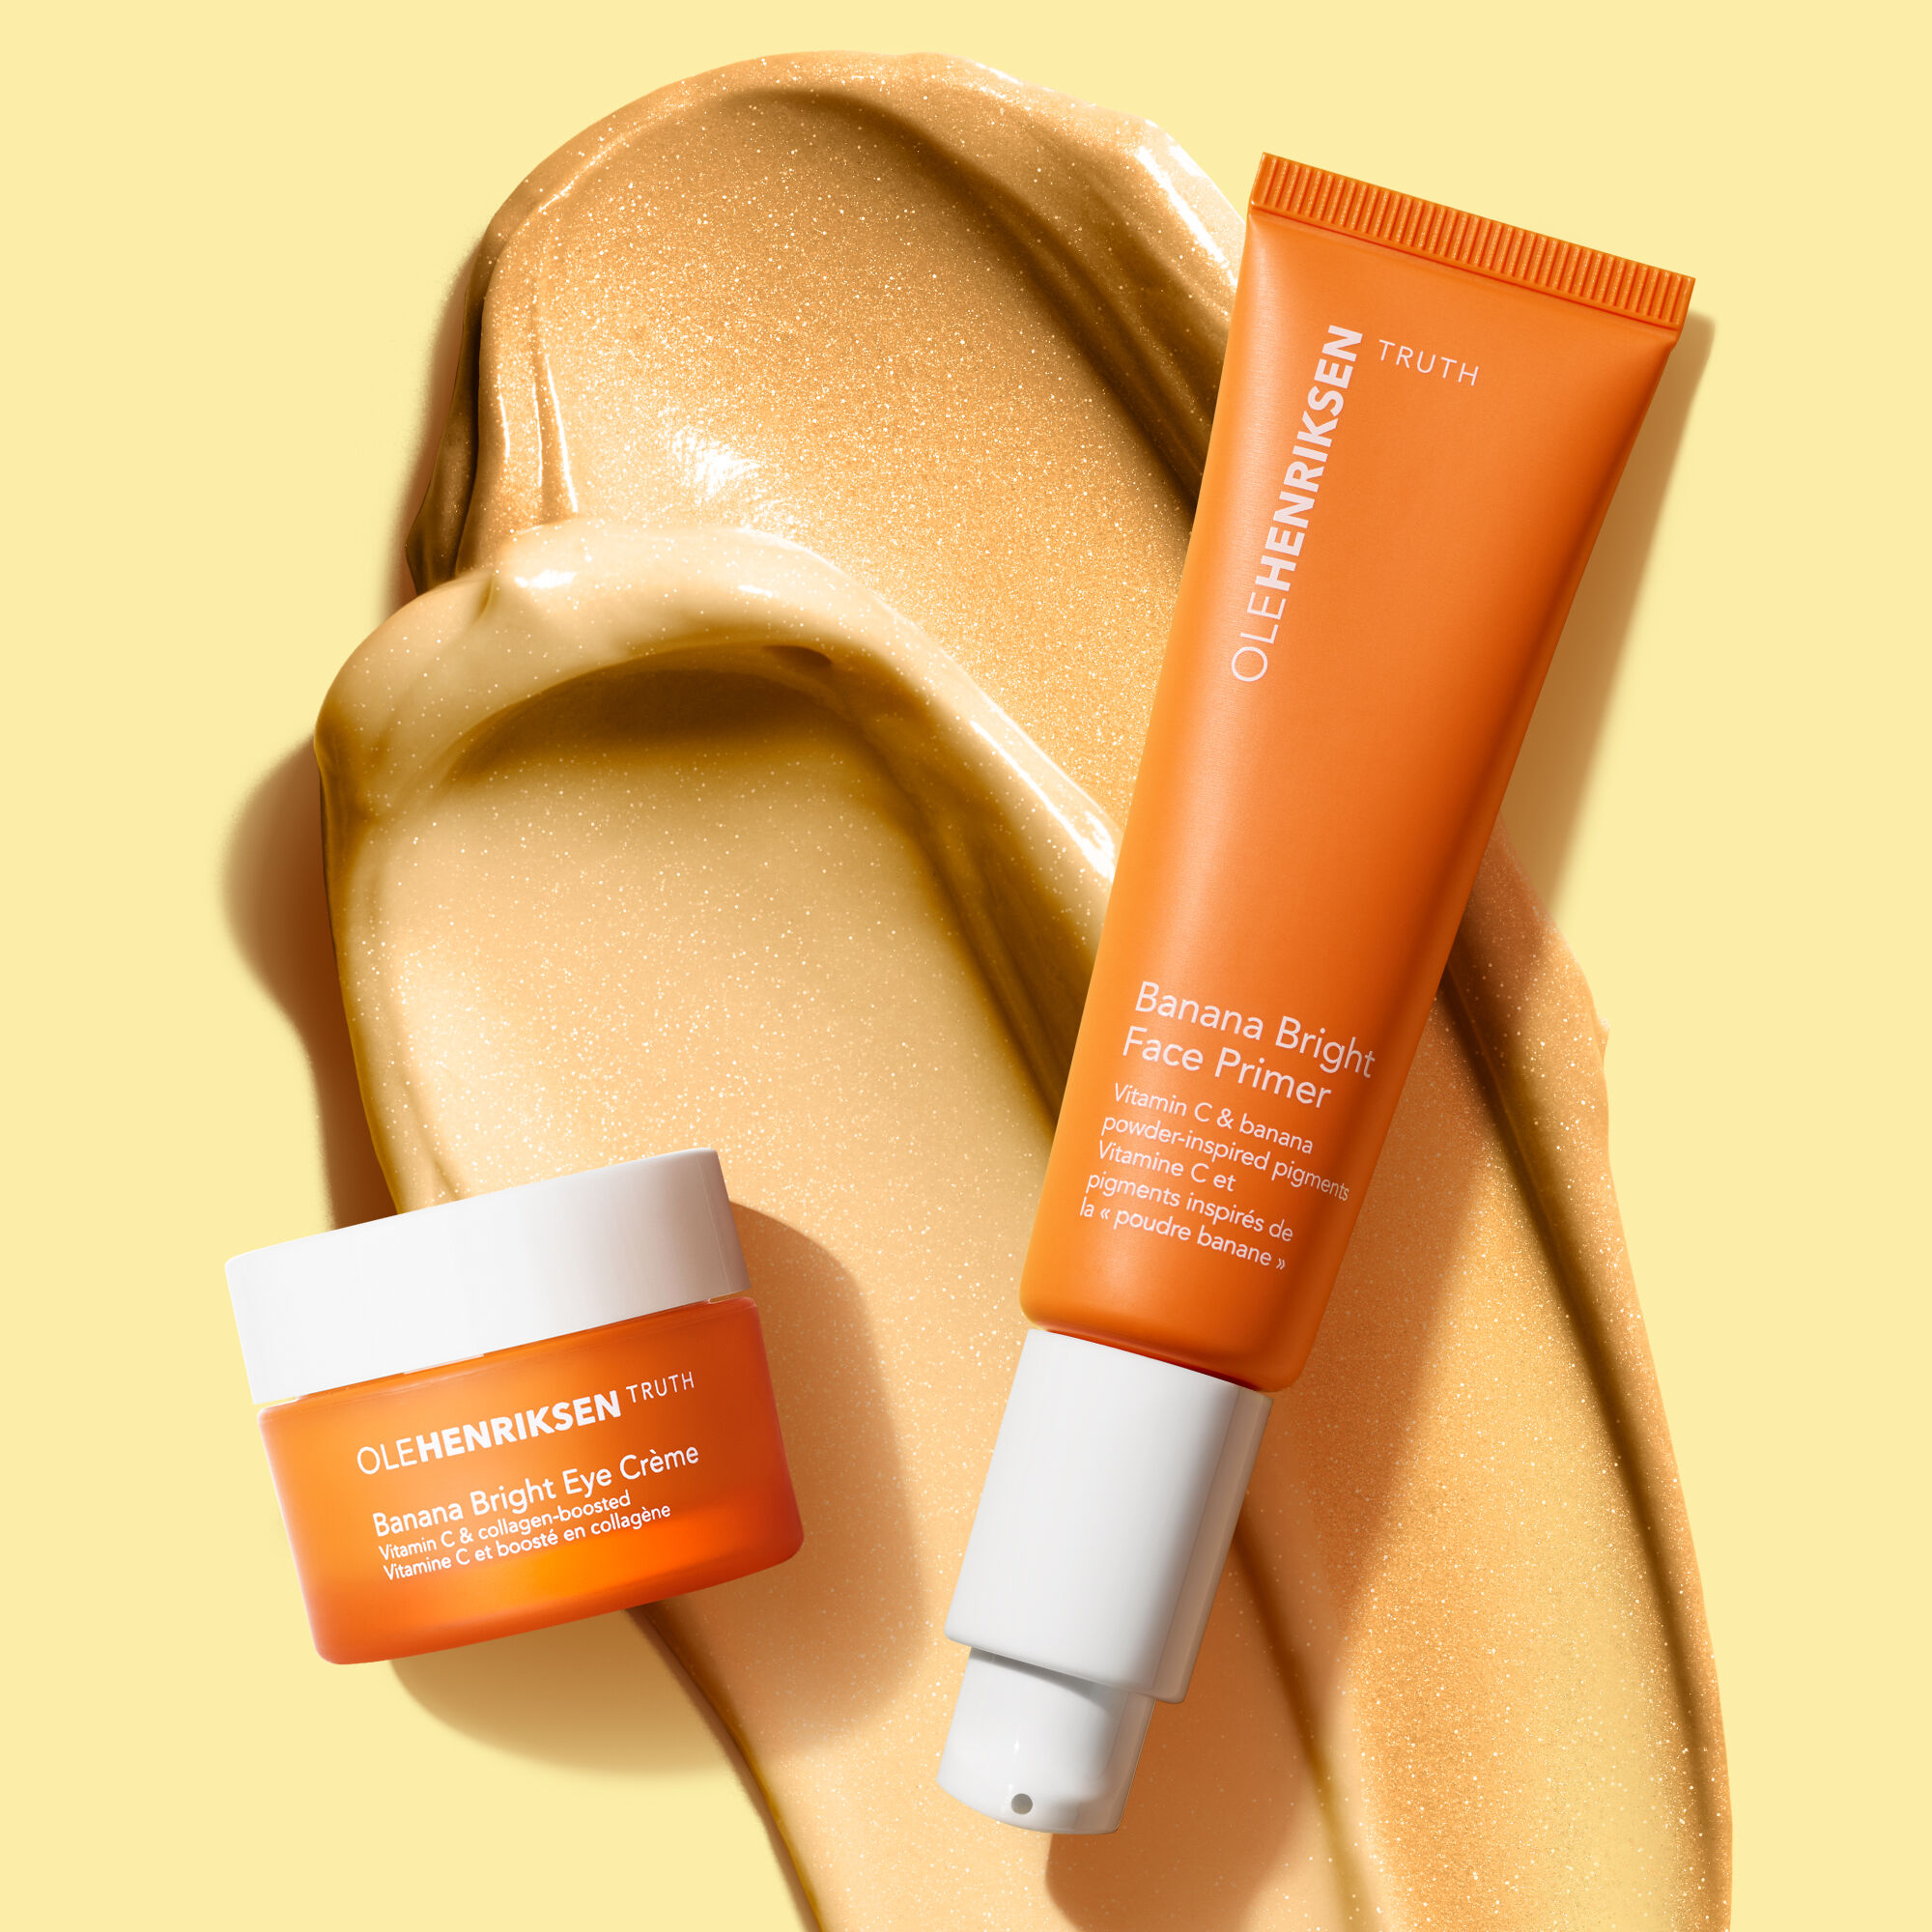 Vitamin C Skincare Set from Ole